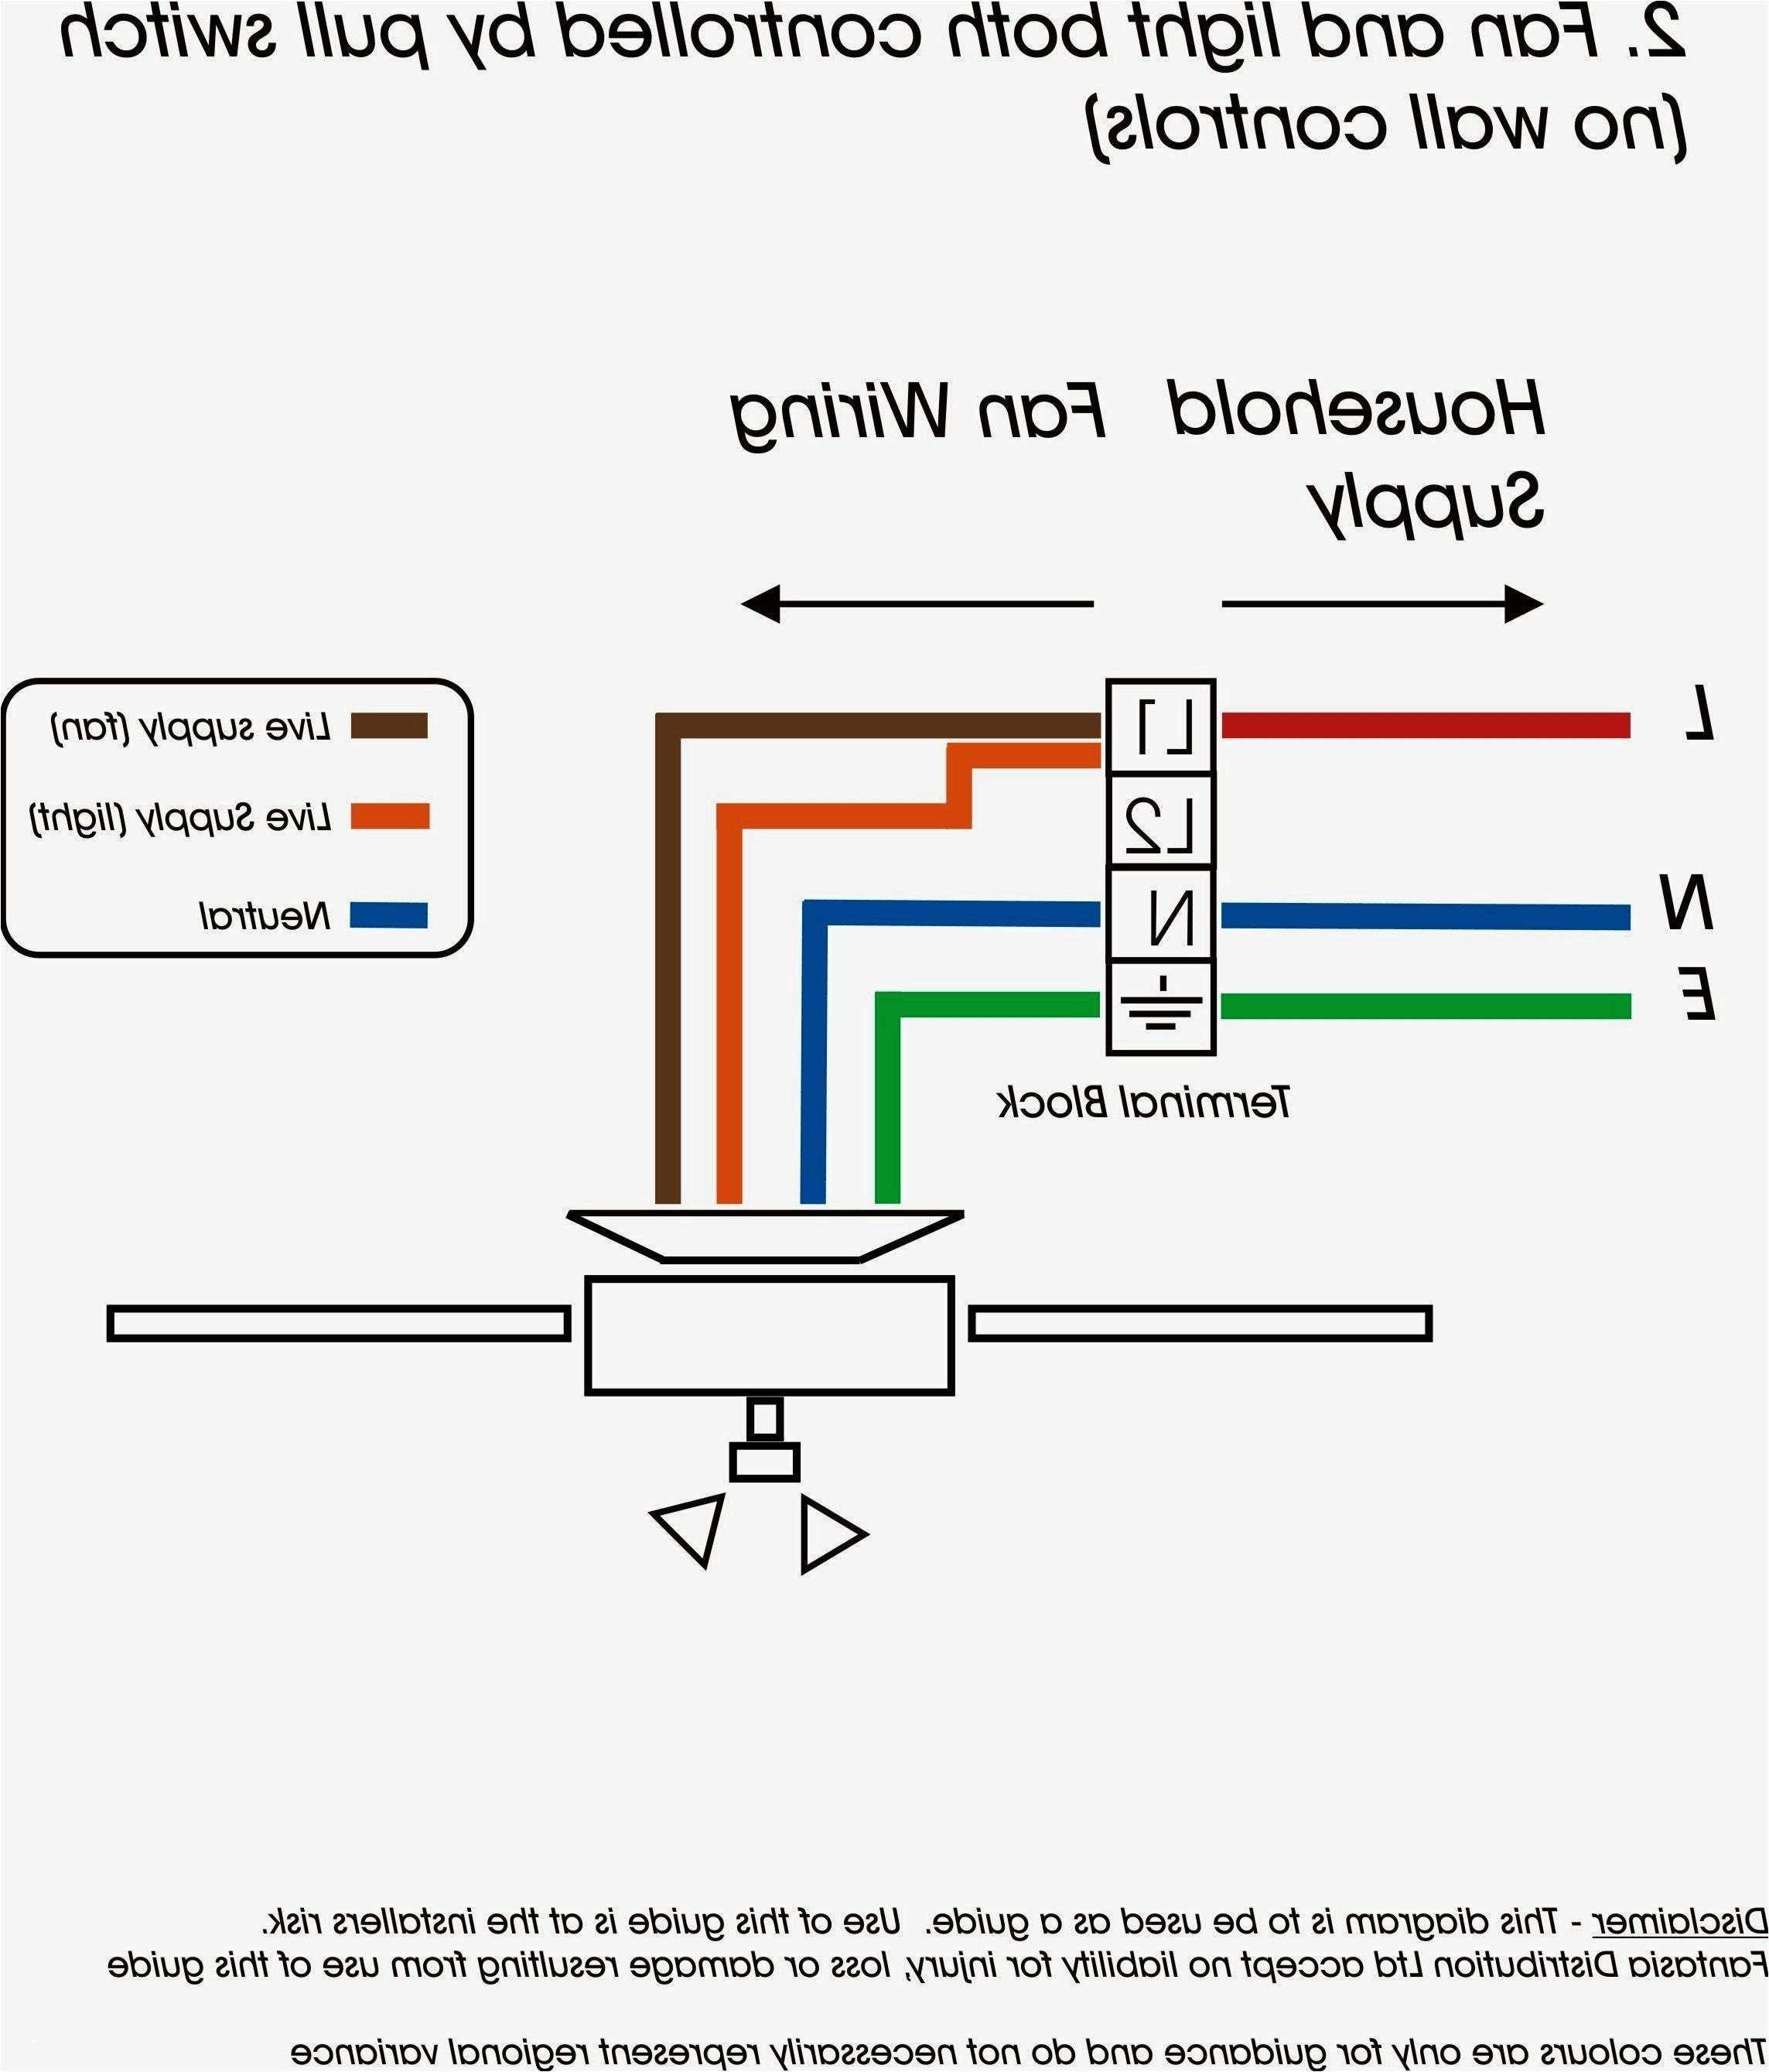 picture of 3 phase wiring diagram for house 3 phase plug diagram 3 12 gvapor nl u2022 rh 3 12 gvapor nl 7 pin plug wiring diagram uk uk nato plug wiring diagram png